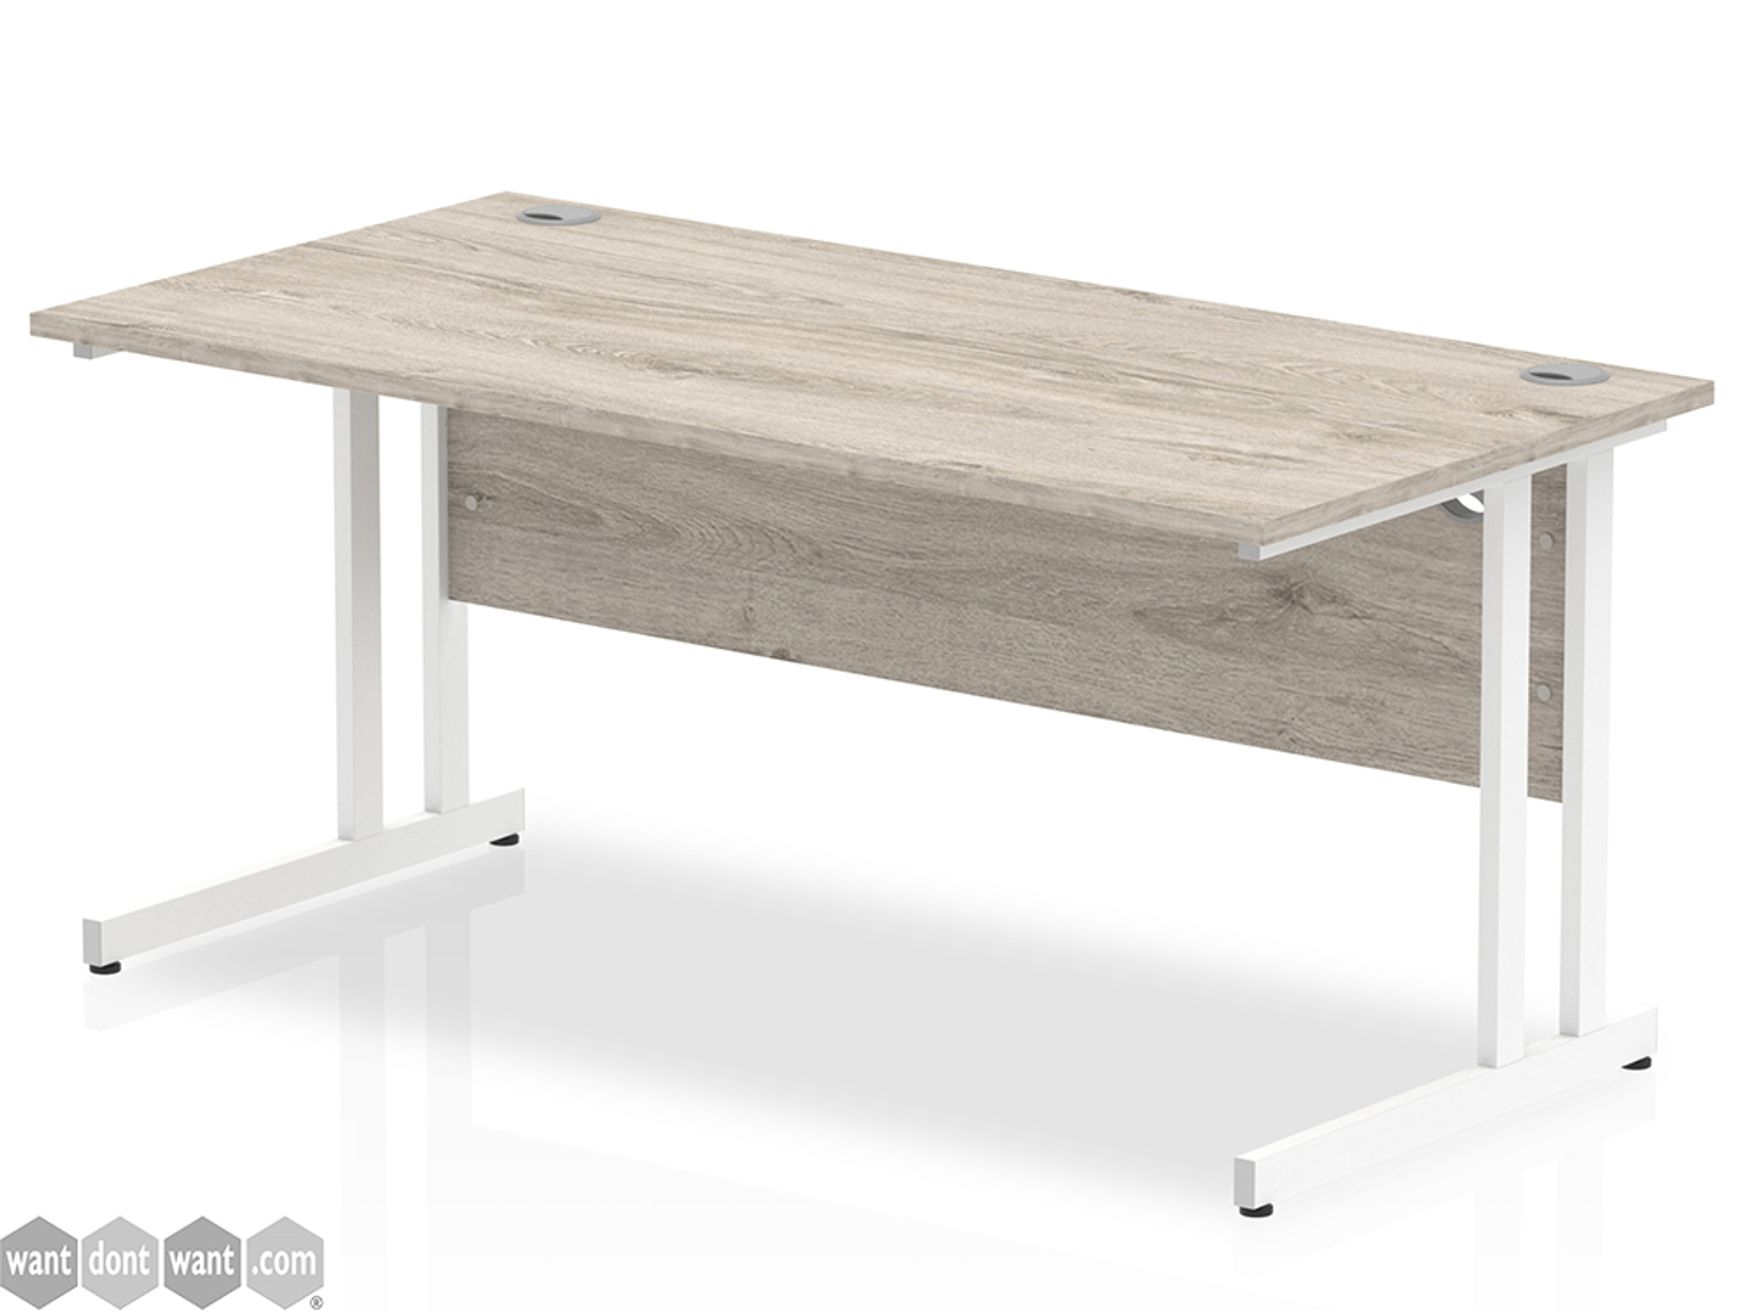 Brand New Desks - Choose Size and Finish